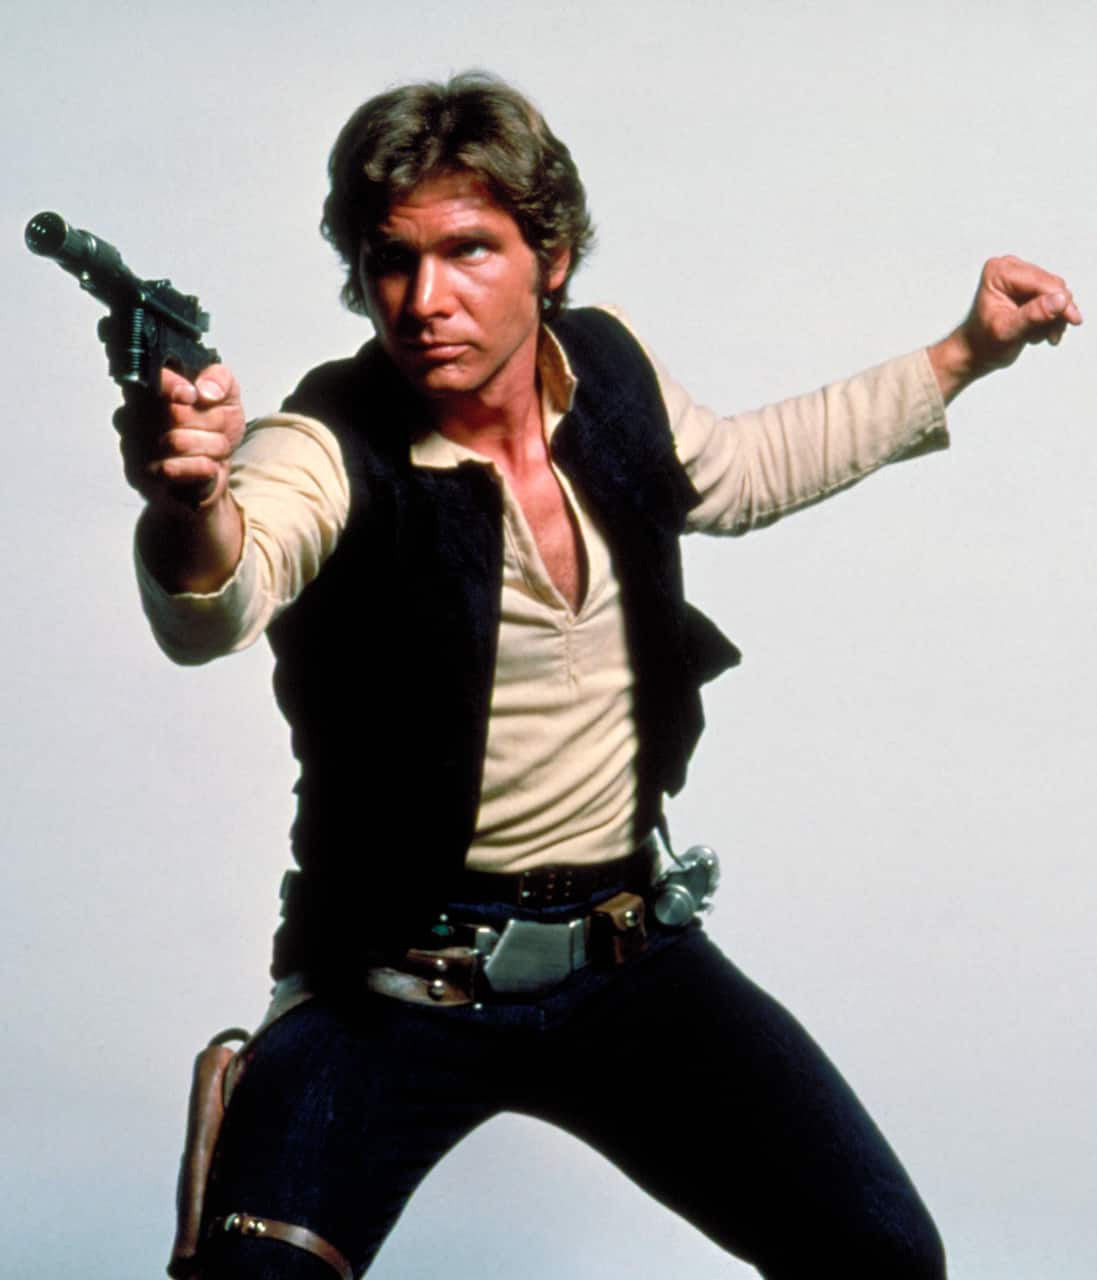 'Star Wars: The Last Jedi' Will Have Han Solo Play A Pivotal Role